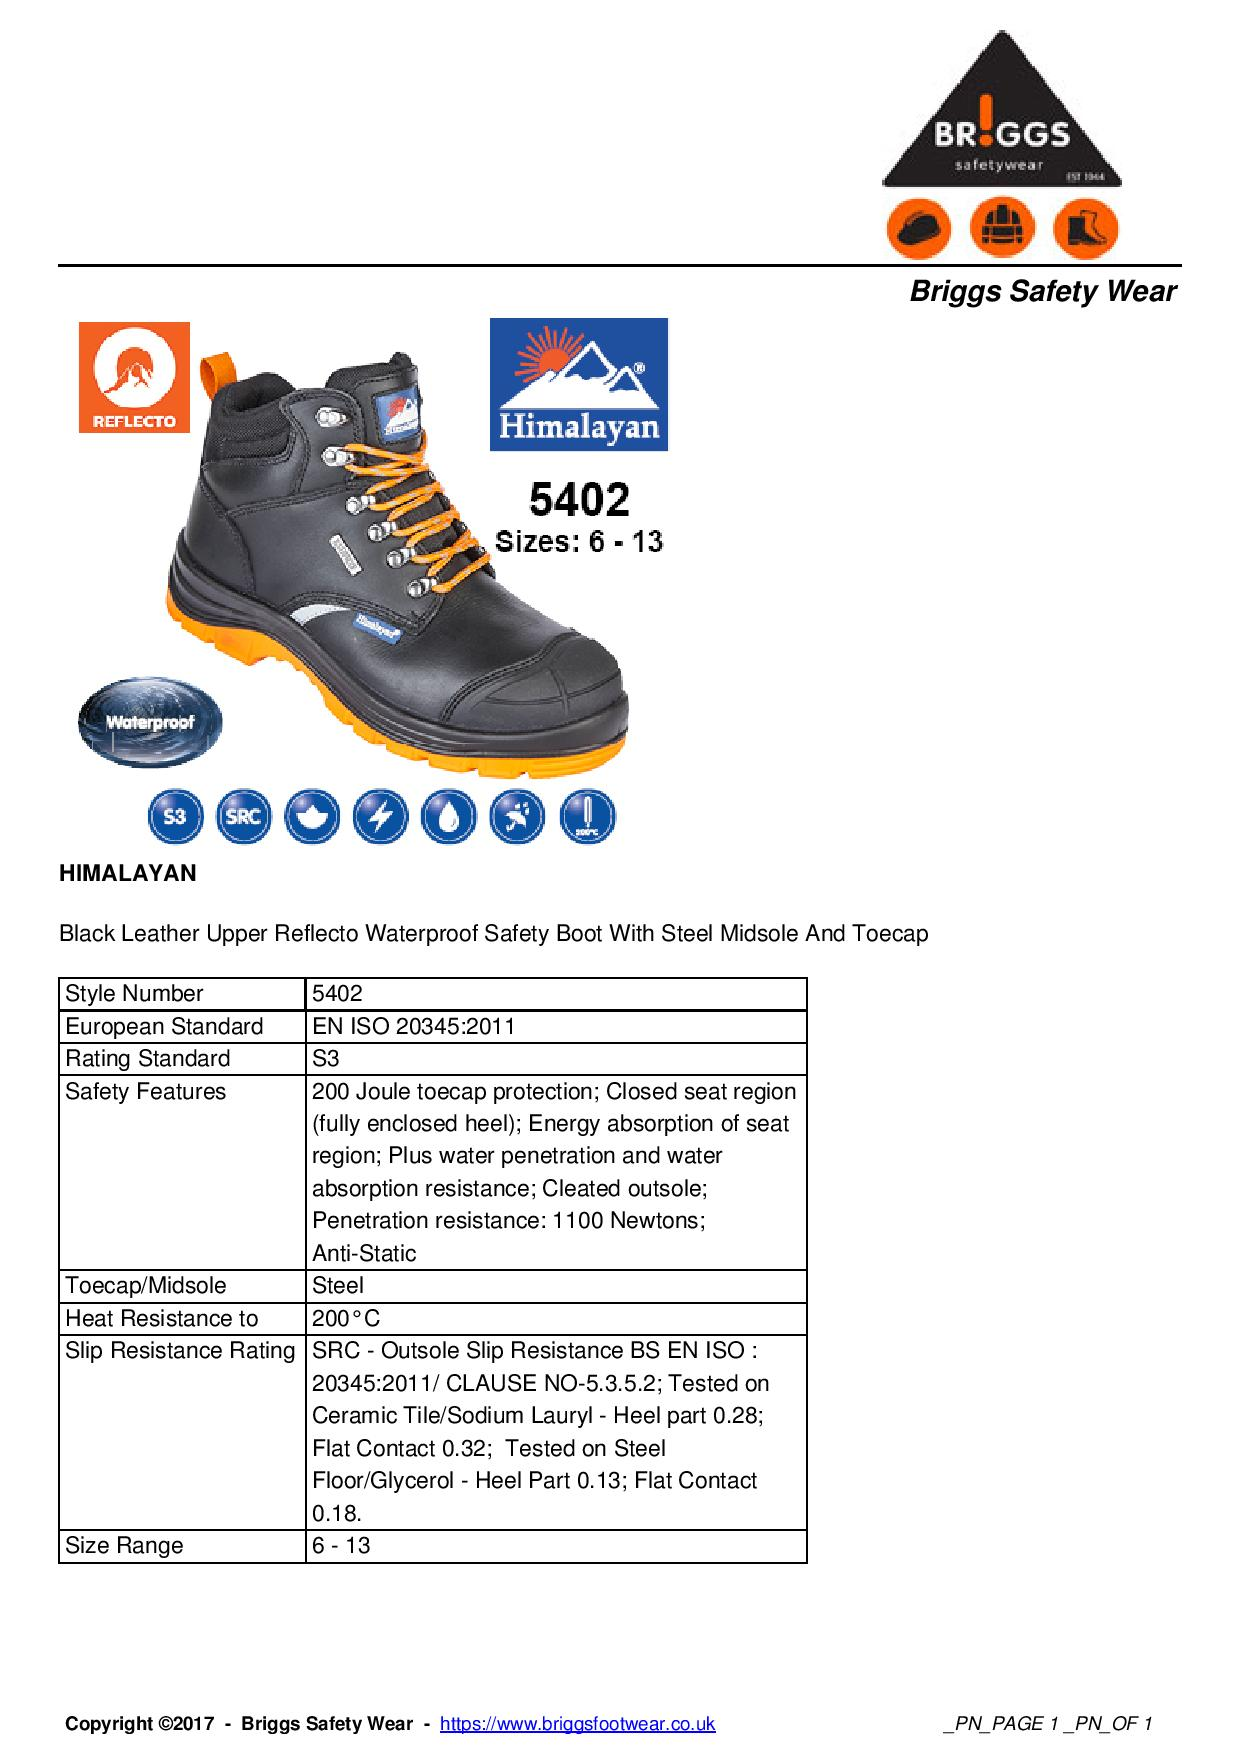 6f779b136a7 S3 SRC - Himalayan Black Leather Upper Reflecto Waterproof Safety ...